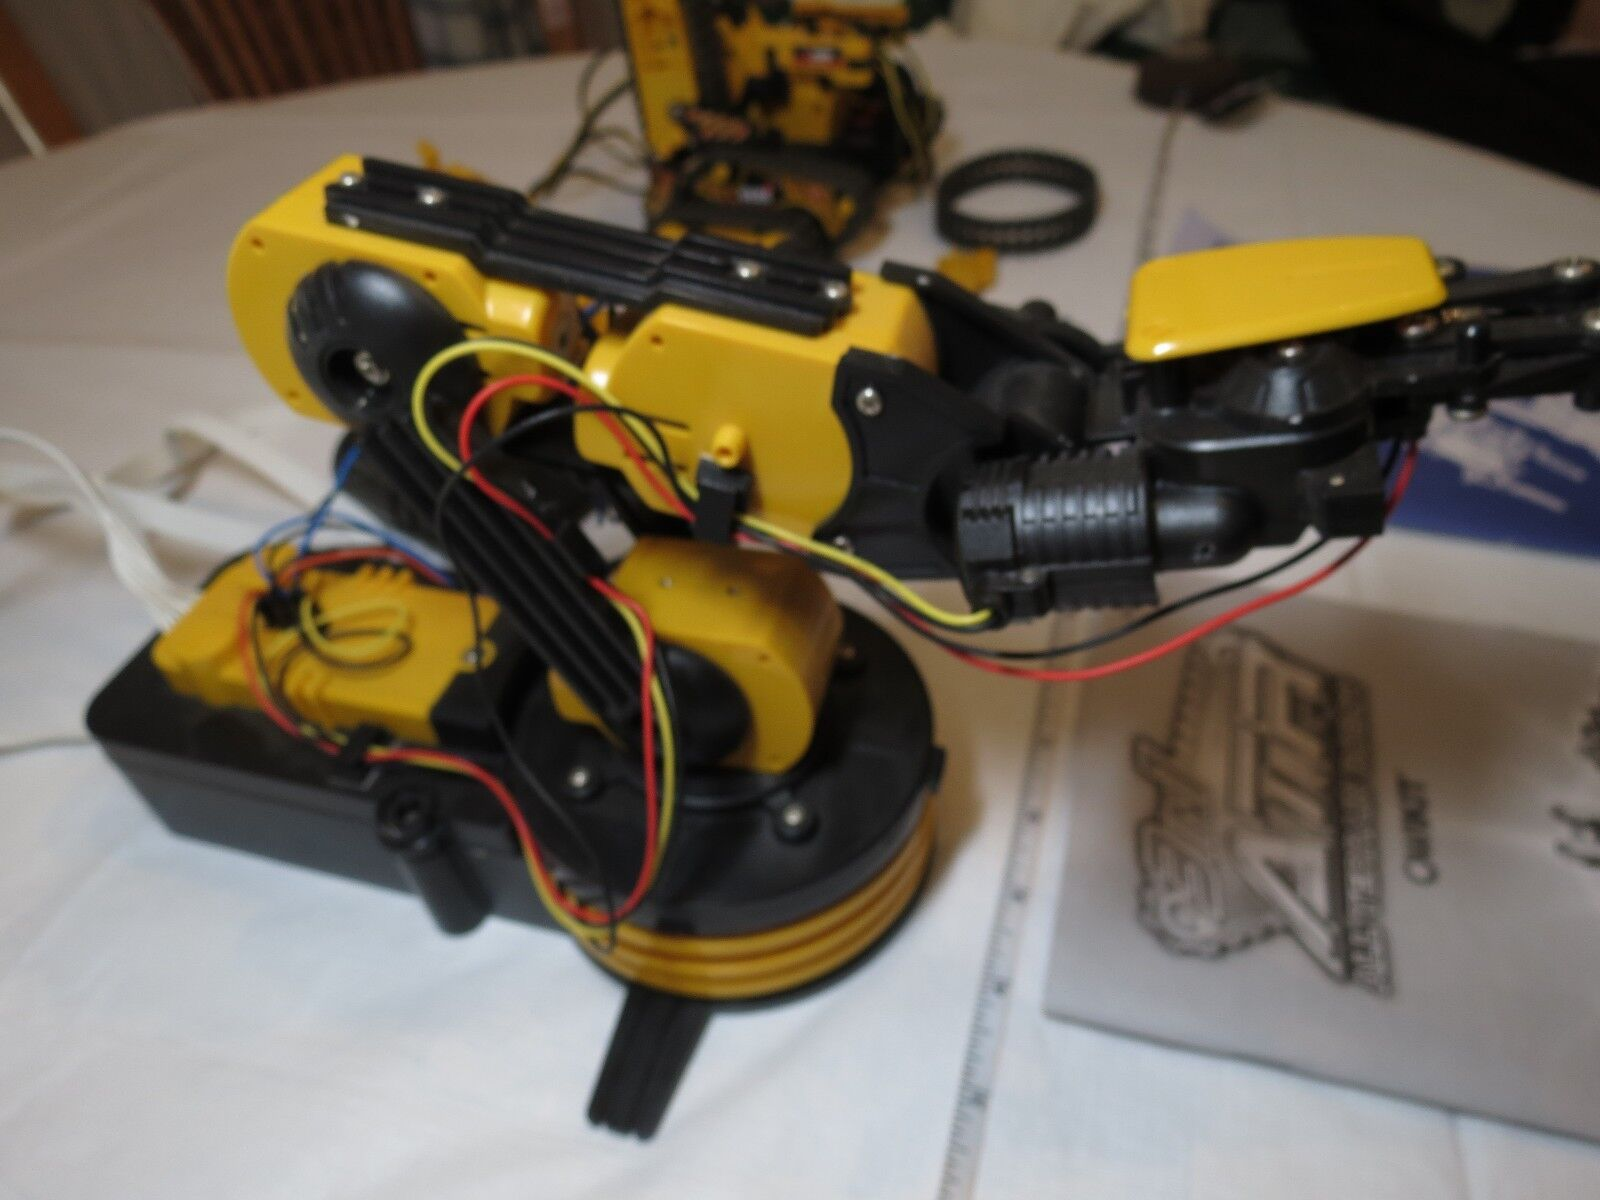 Robotic Arm-edge wiROT control arm kit 3 all in 1 ATR all 3 Terrain Robot OWIKIT LOT 081312